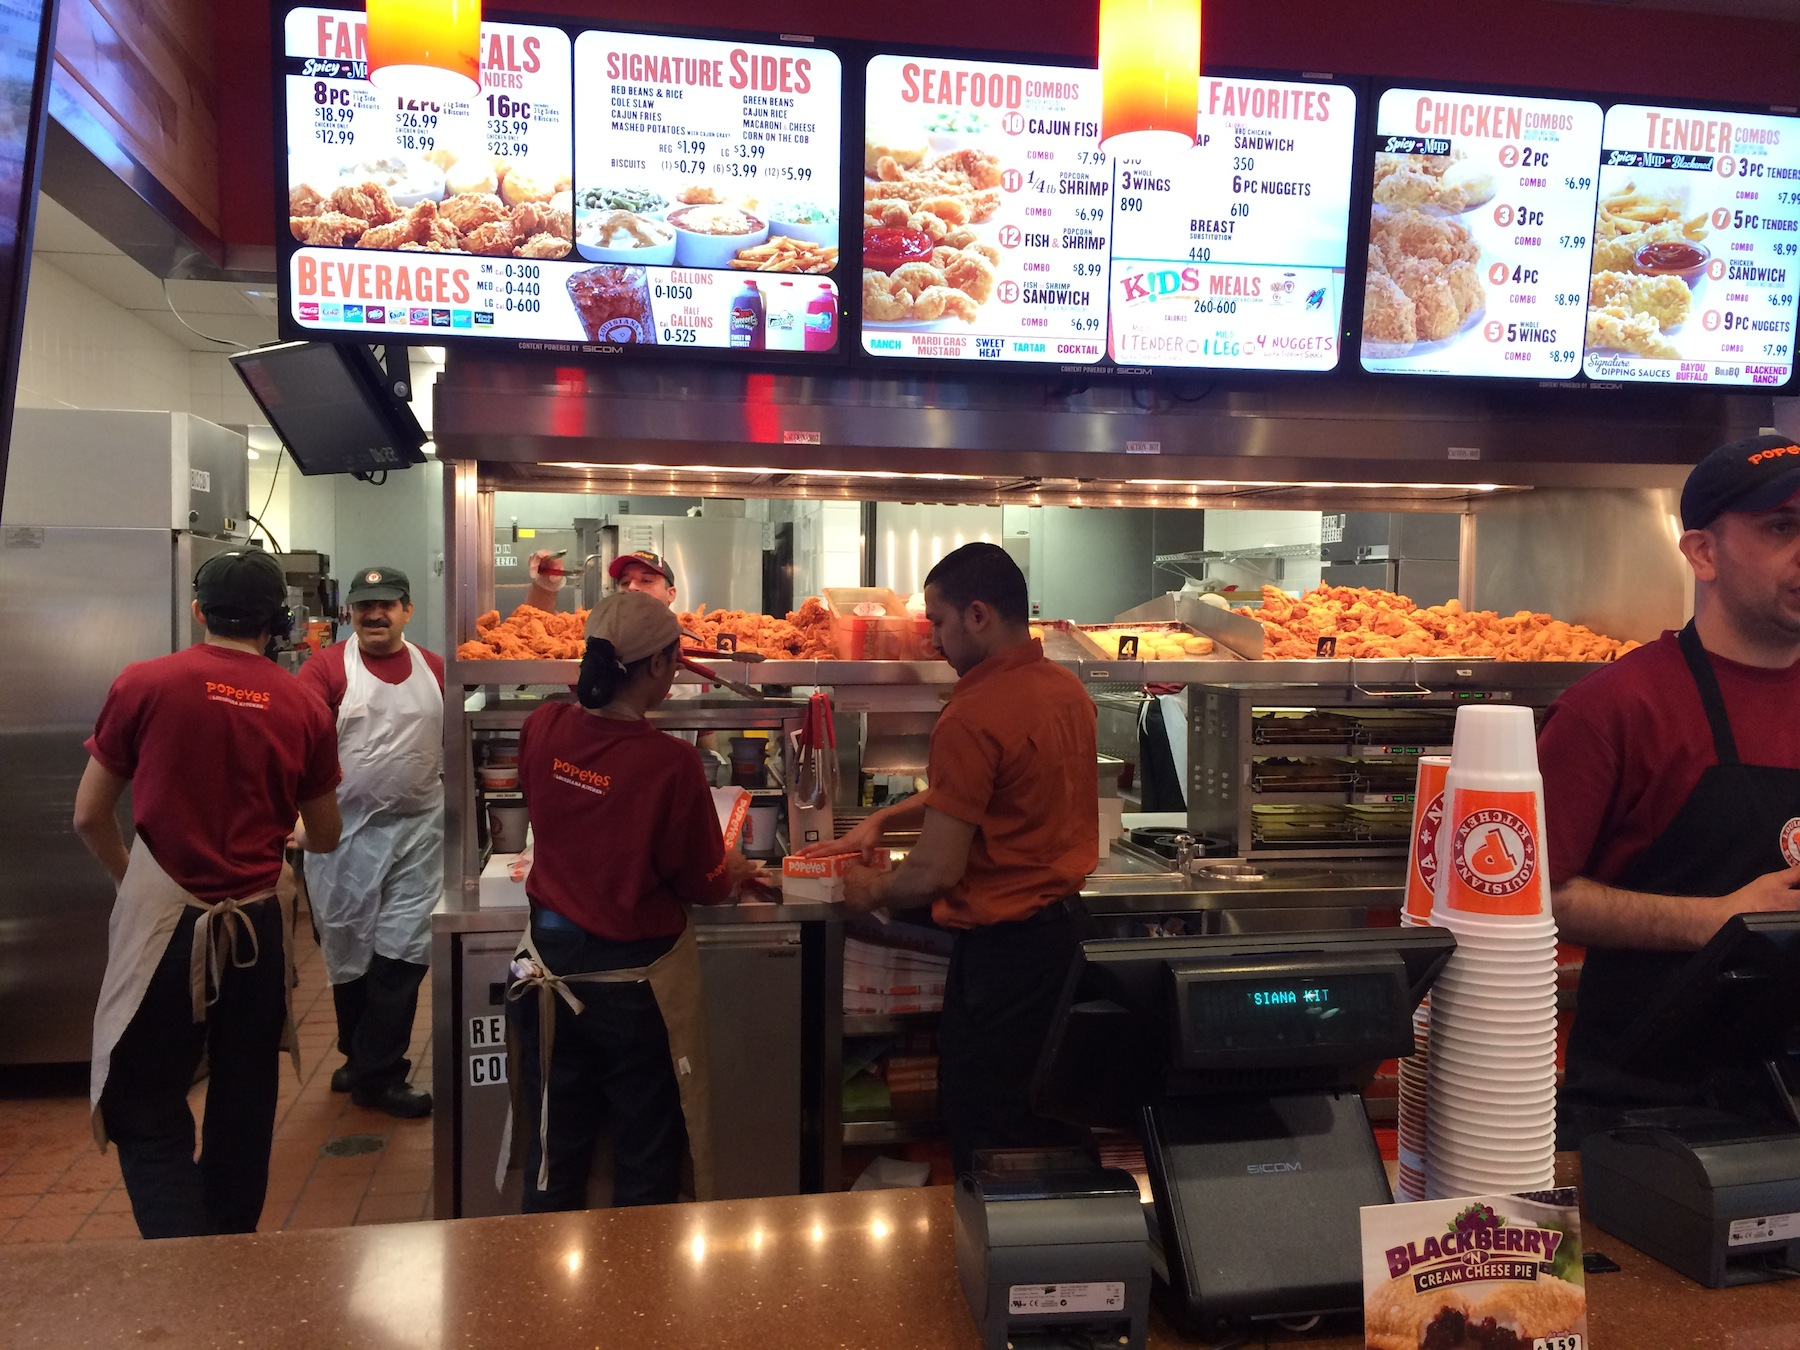 The Menu/Counter (Popeyes)